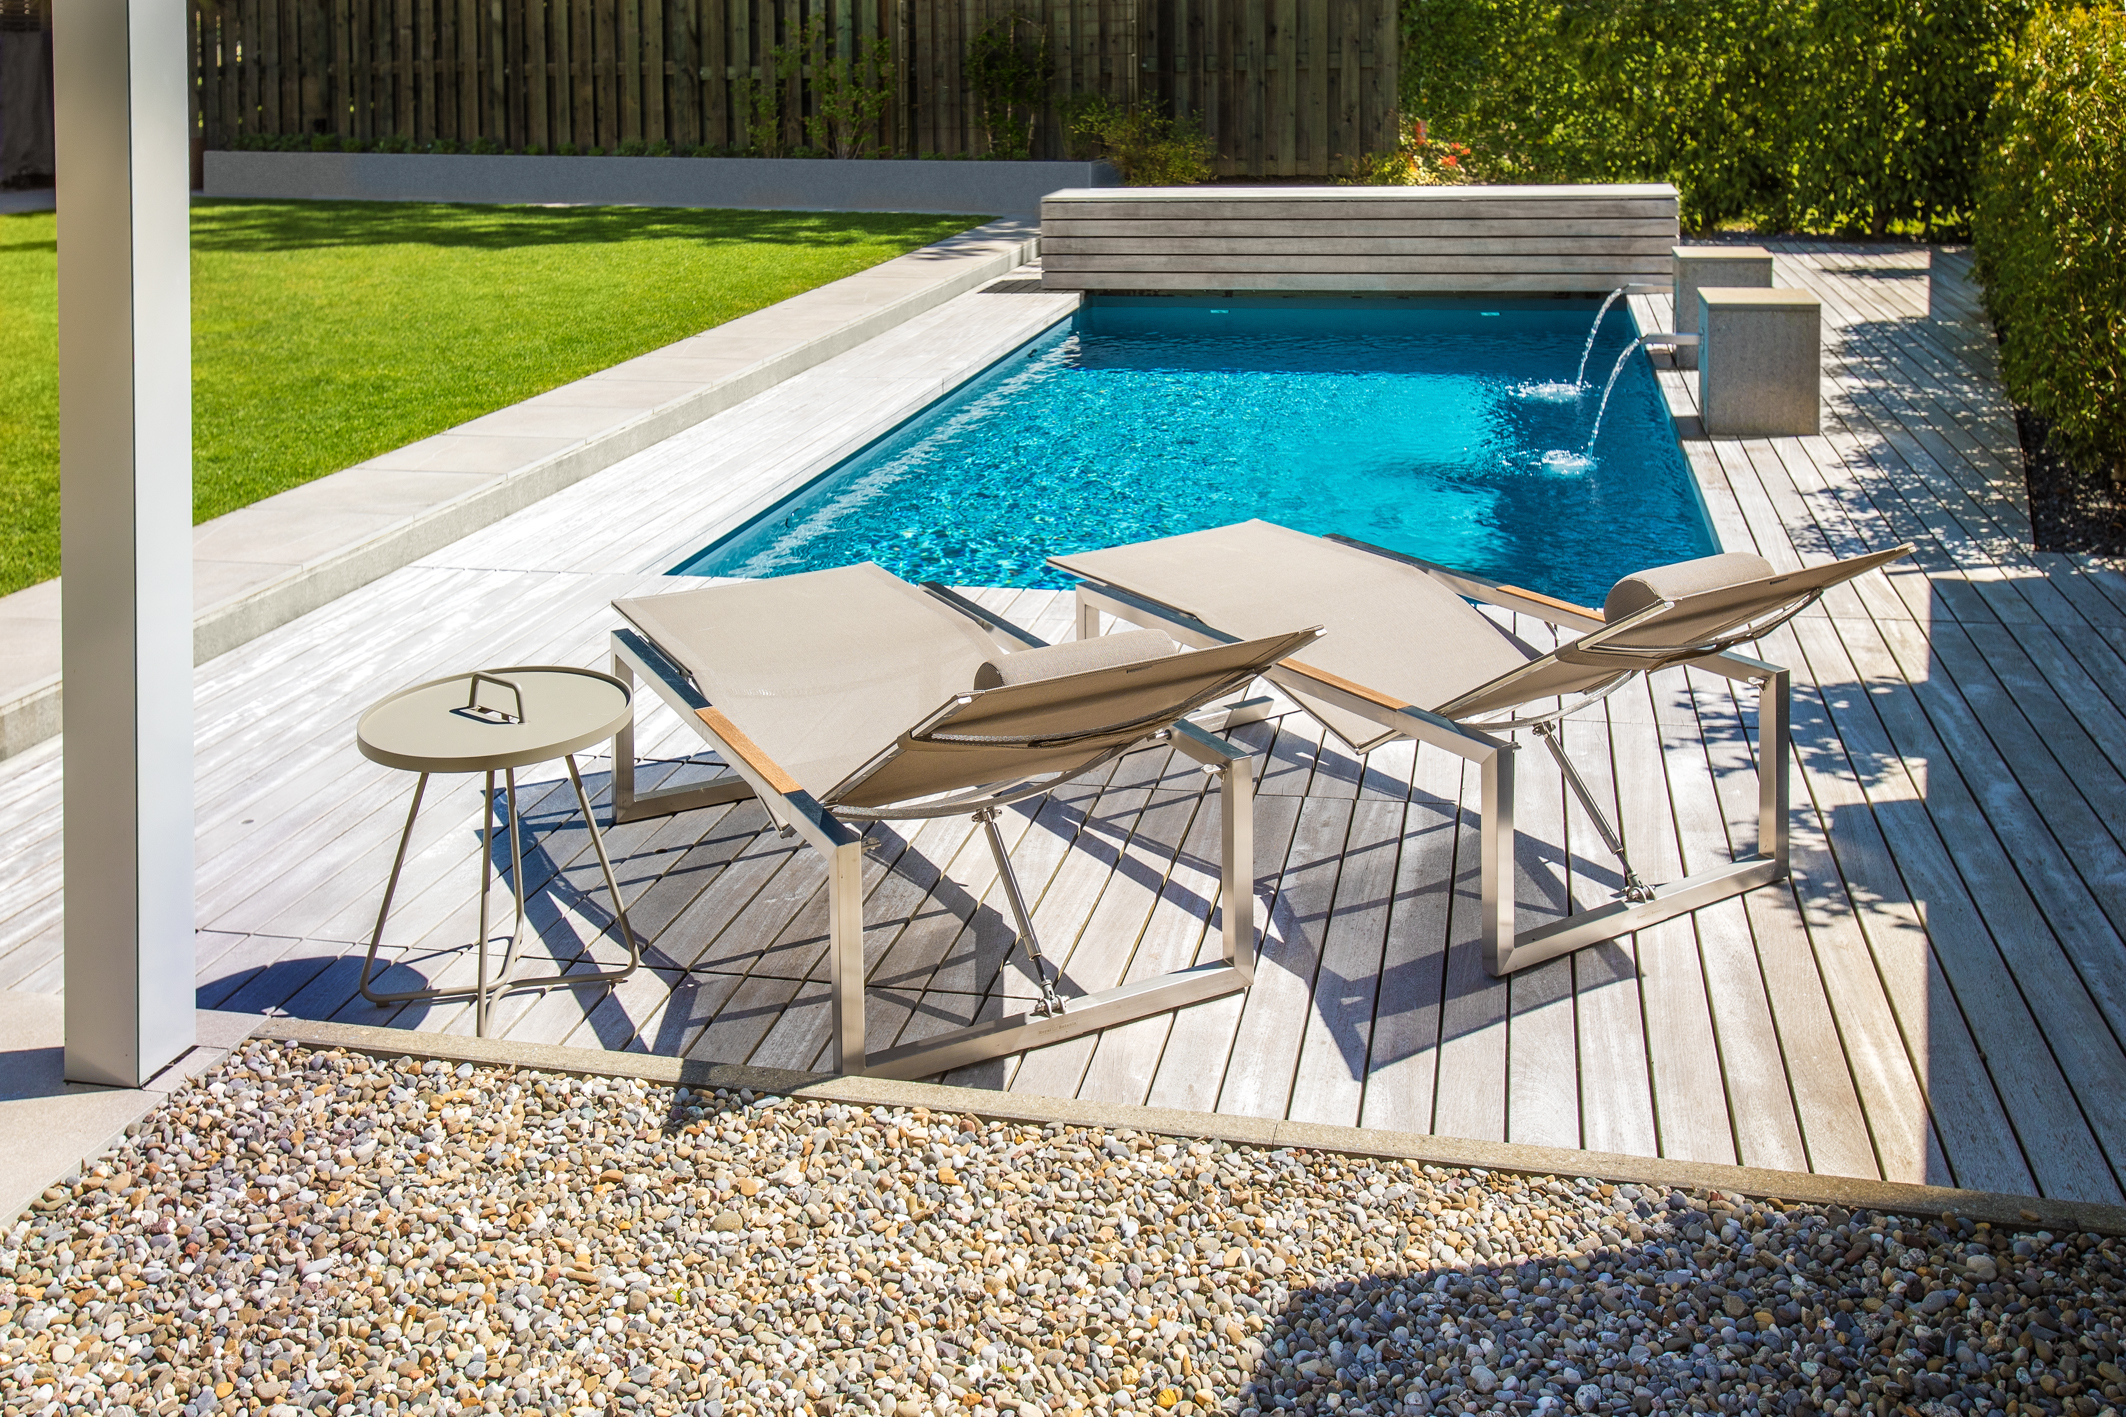 Living-Pool-Naturpool-egli-jona-blog-1-2